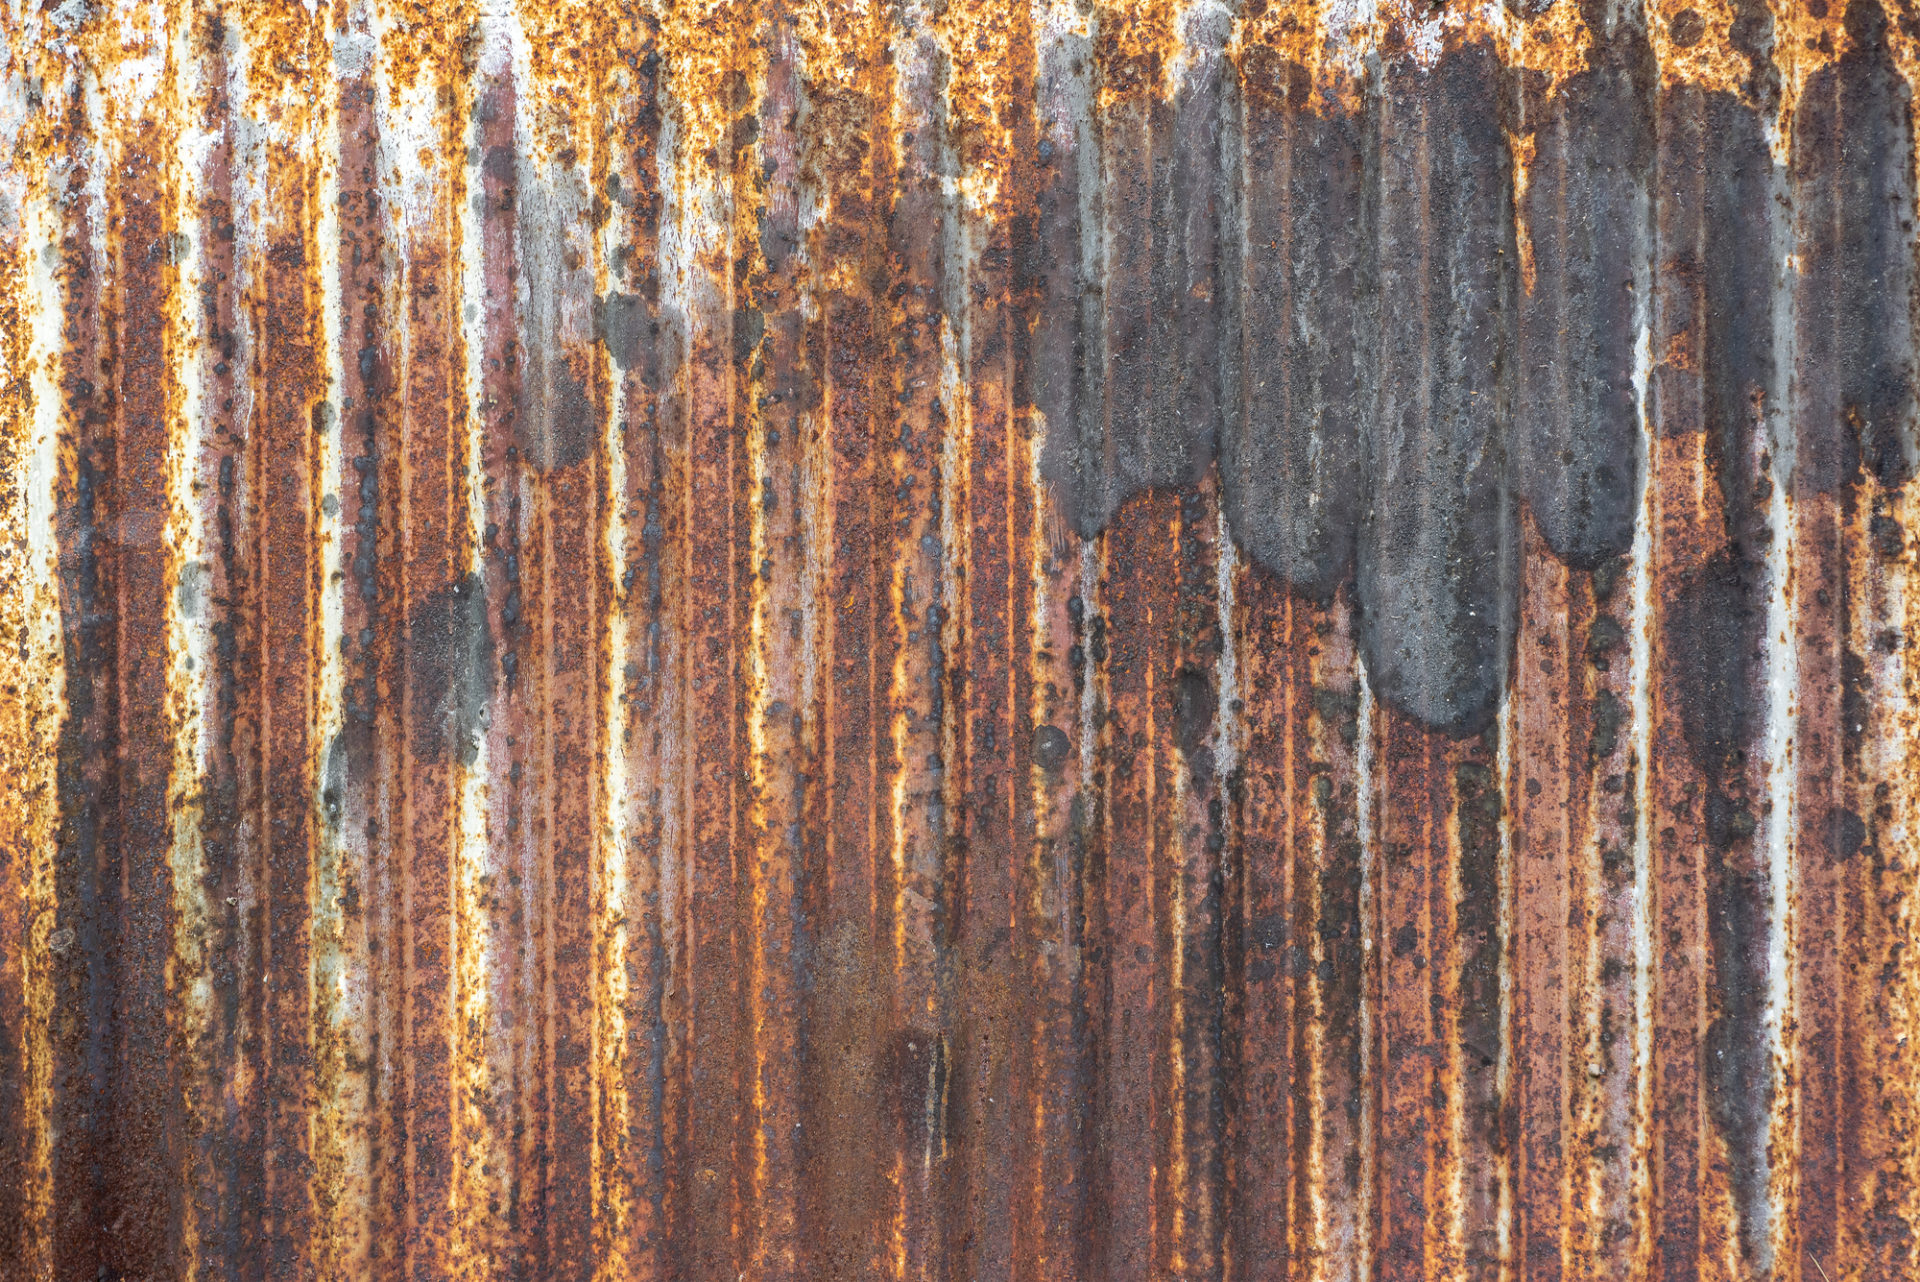 Rusted Metal Sheet Seamless Texture With Vertical Ridges